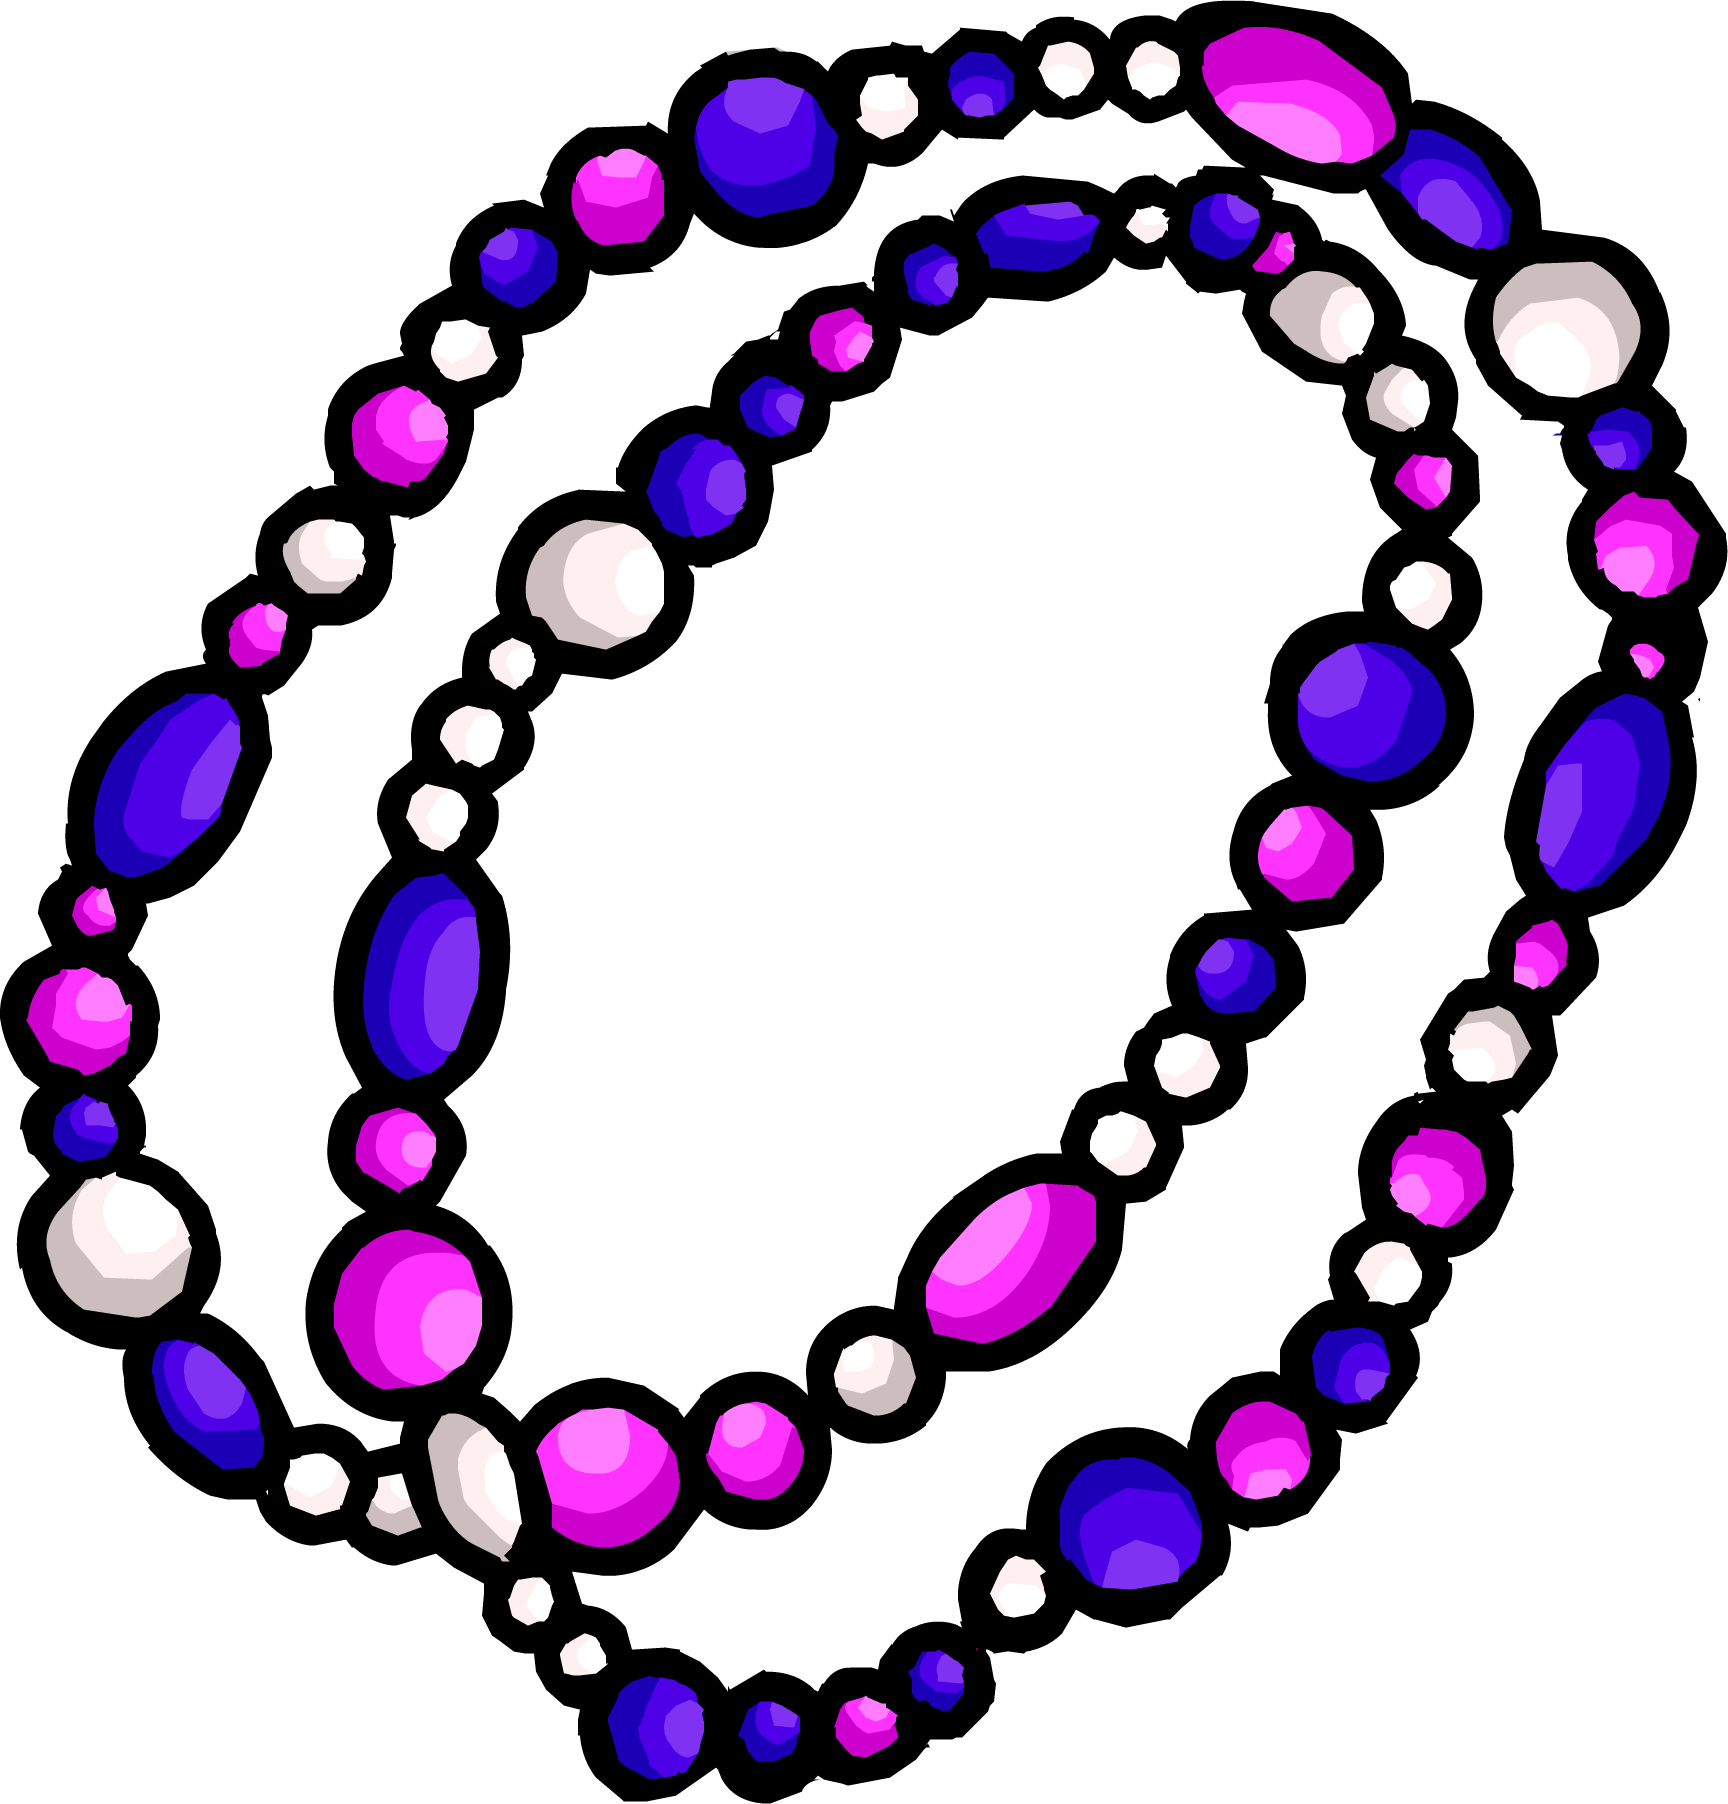 Image - Purple Beaded Necklace.png | Club Penguin Wiki | FANDOM ...